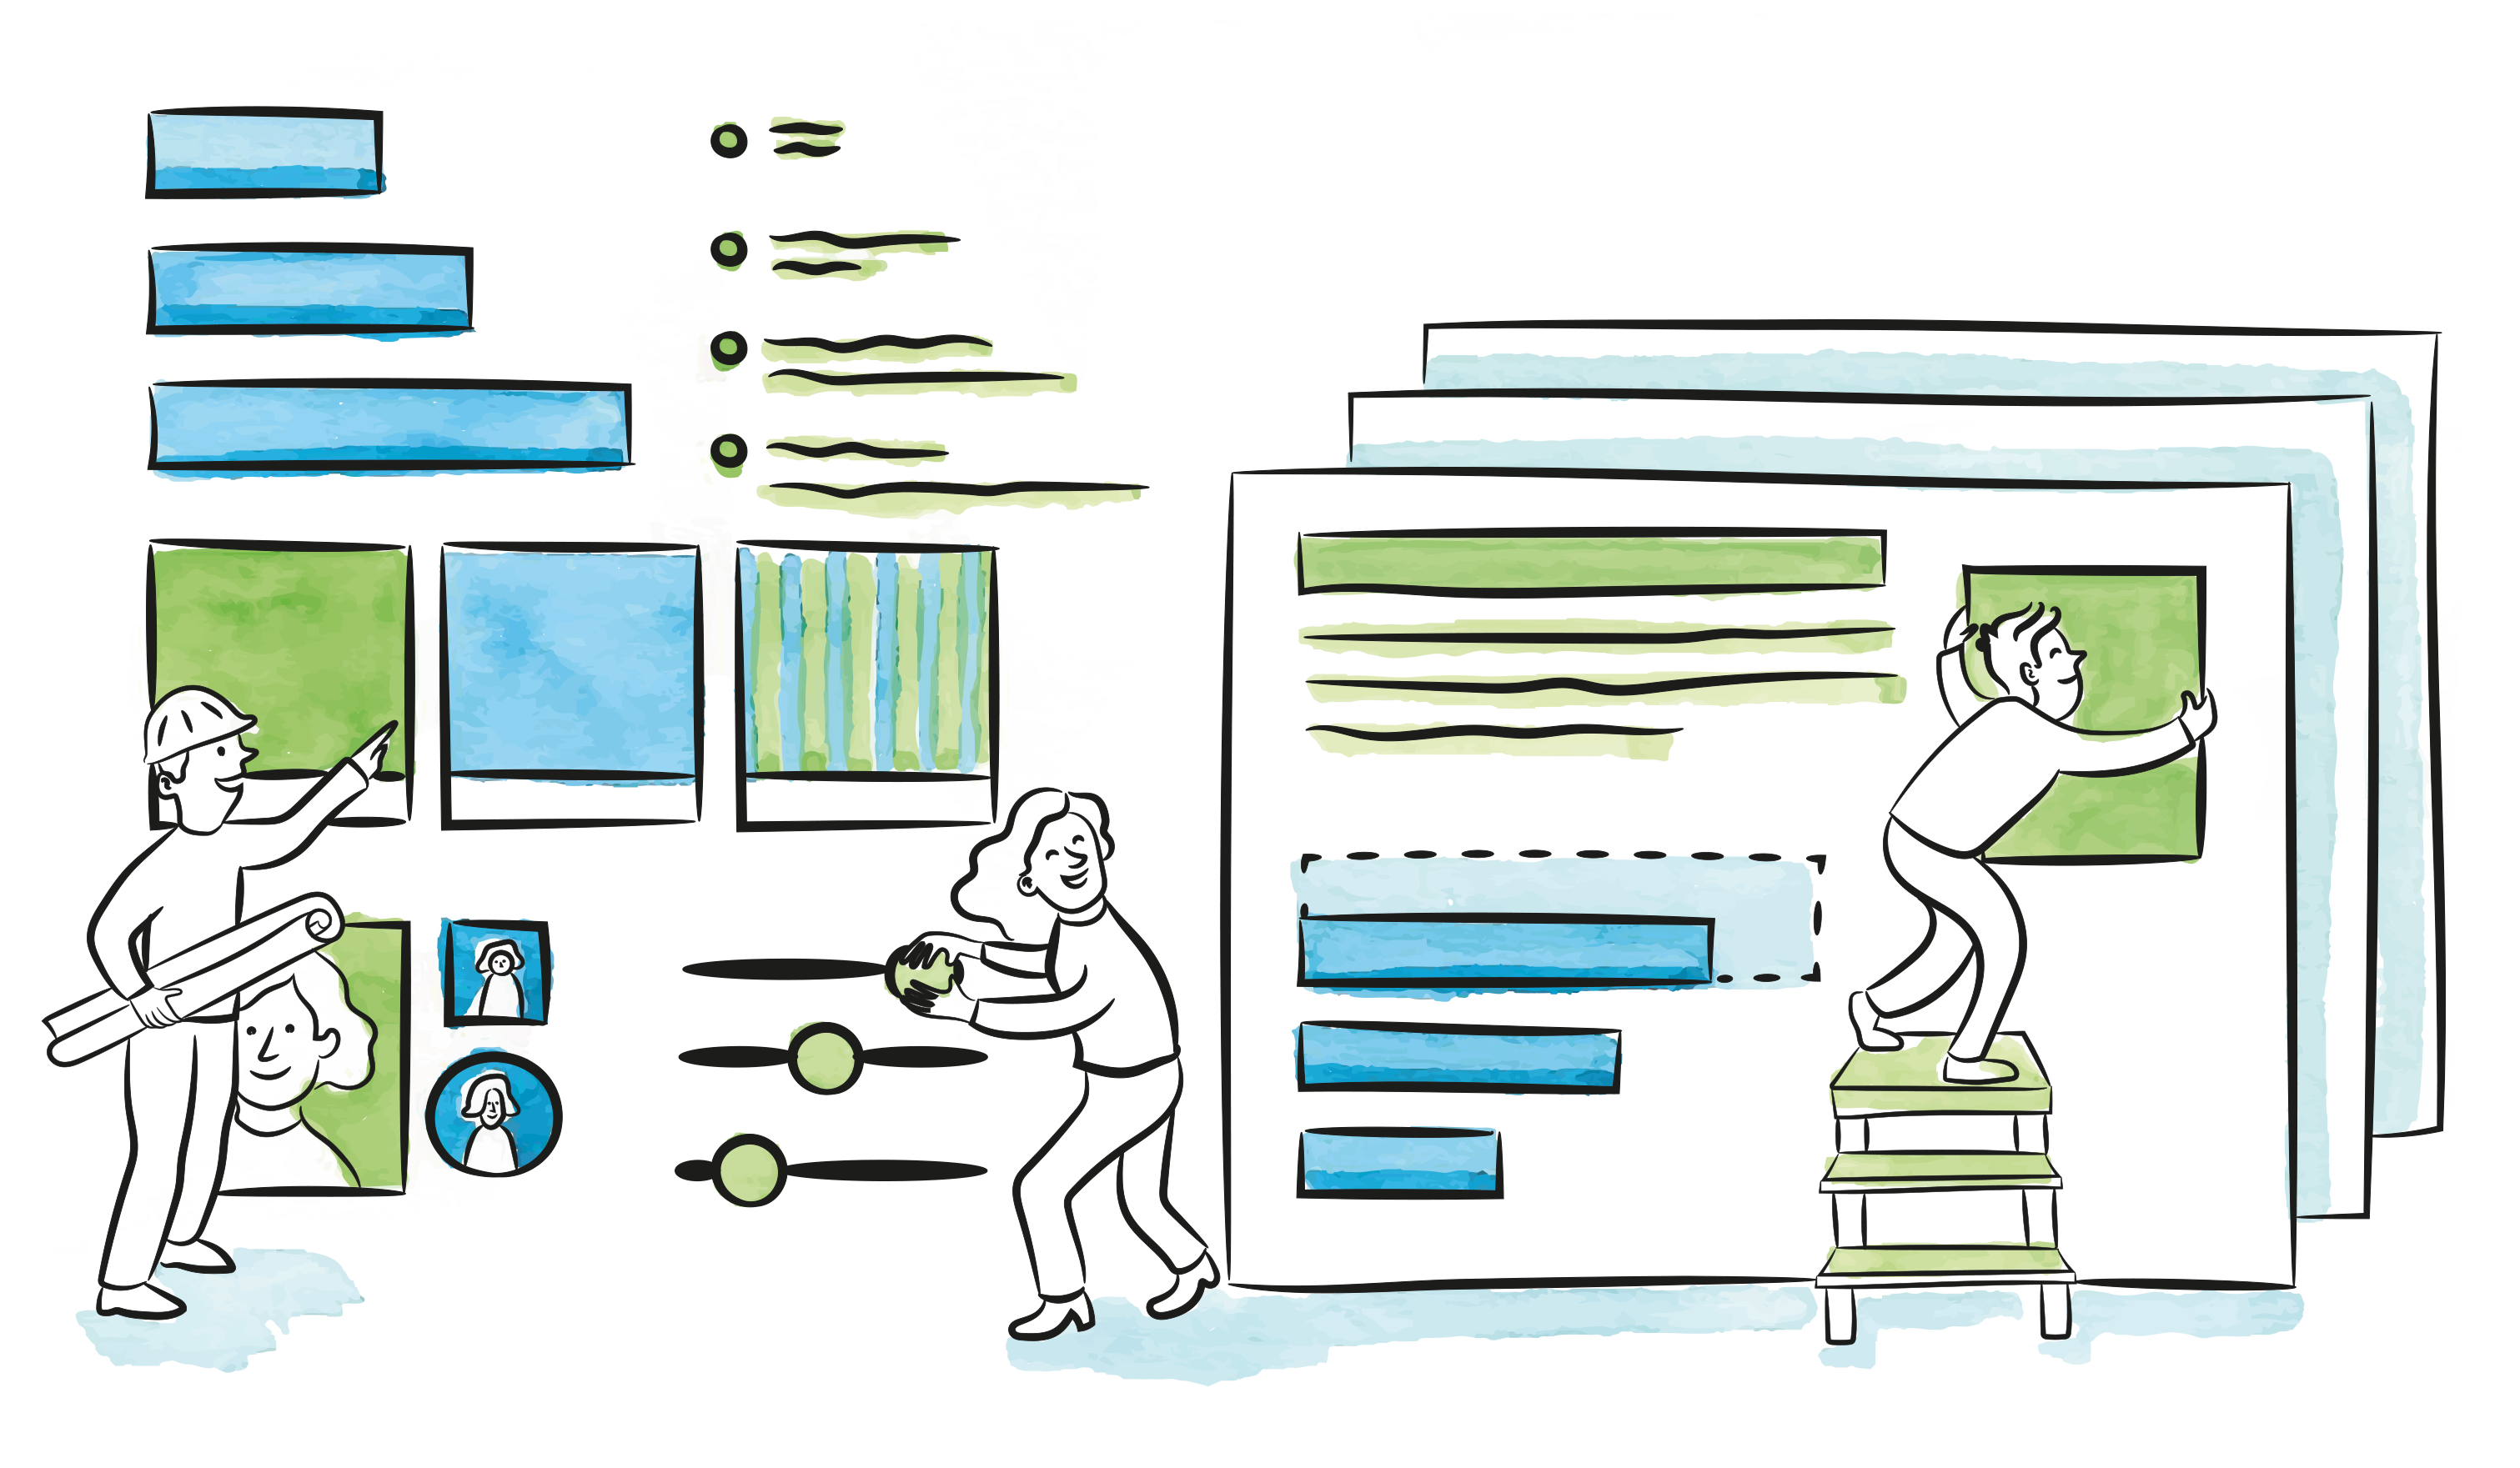 Illustration of people moving widgets around on a website as it was a construction site